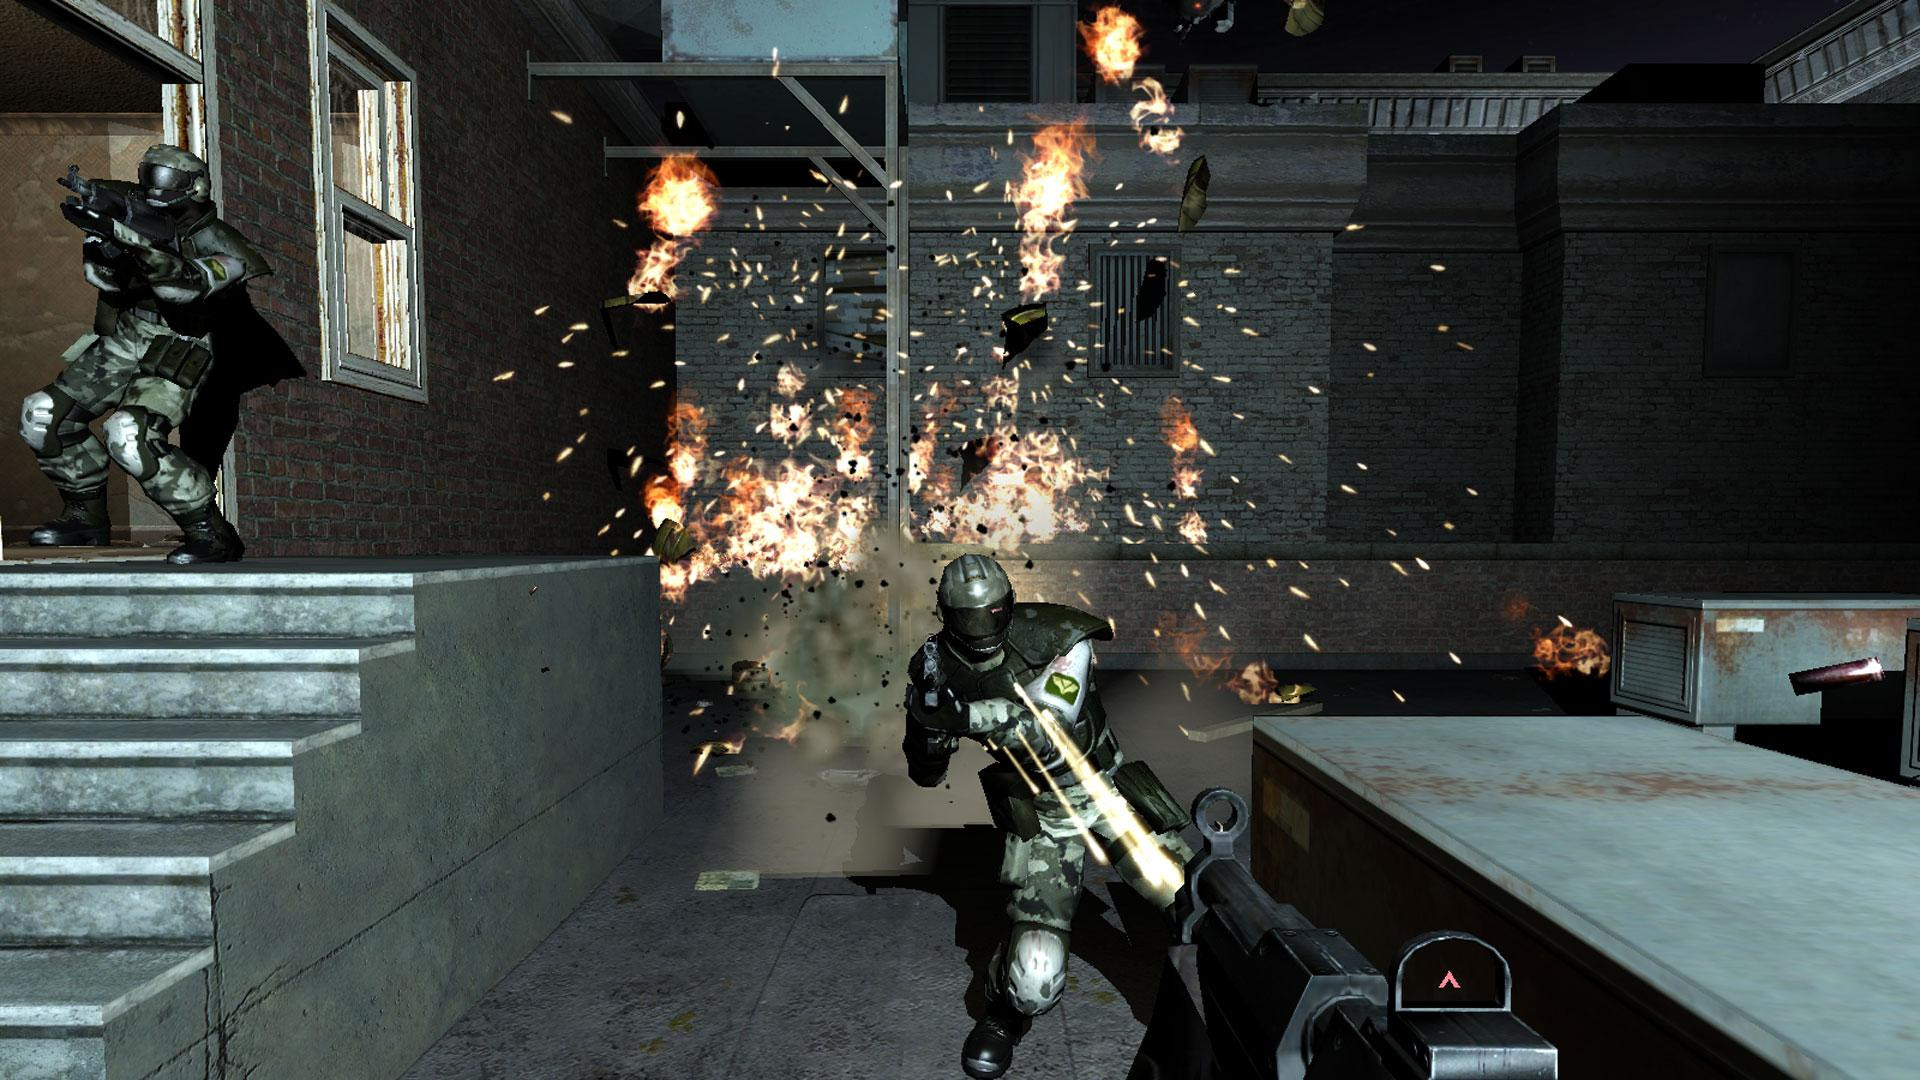 The F.E.A.R series should be renamed K.I.L.L, for all the killing that happens